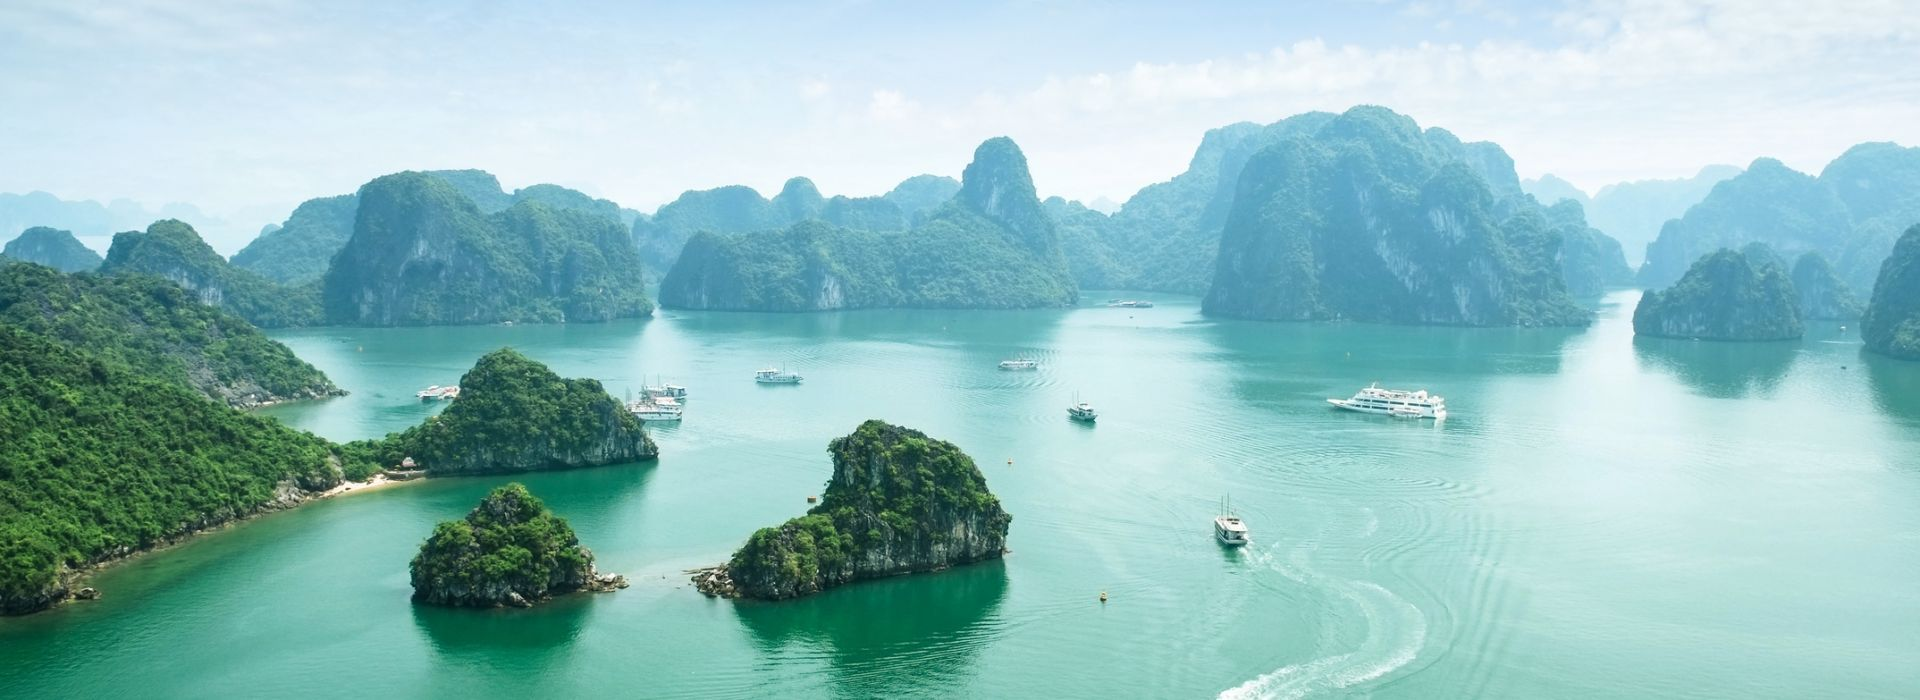 Sailing, yachting and motor boating Tours in Vietnam